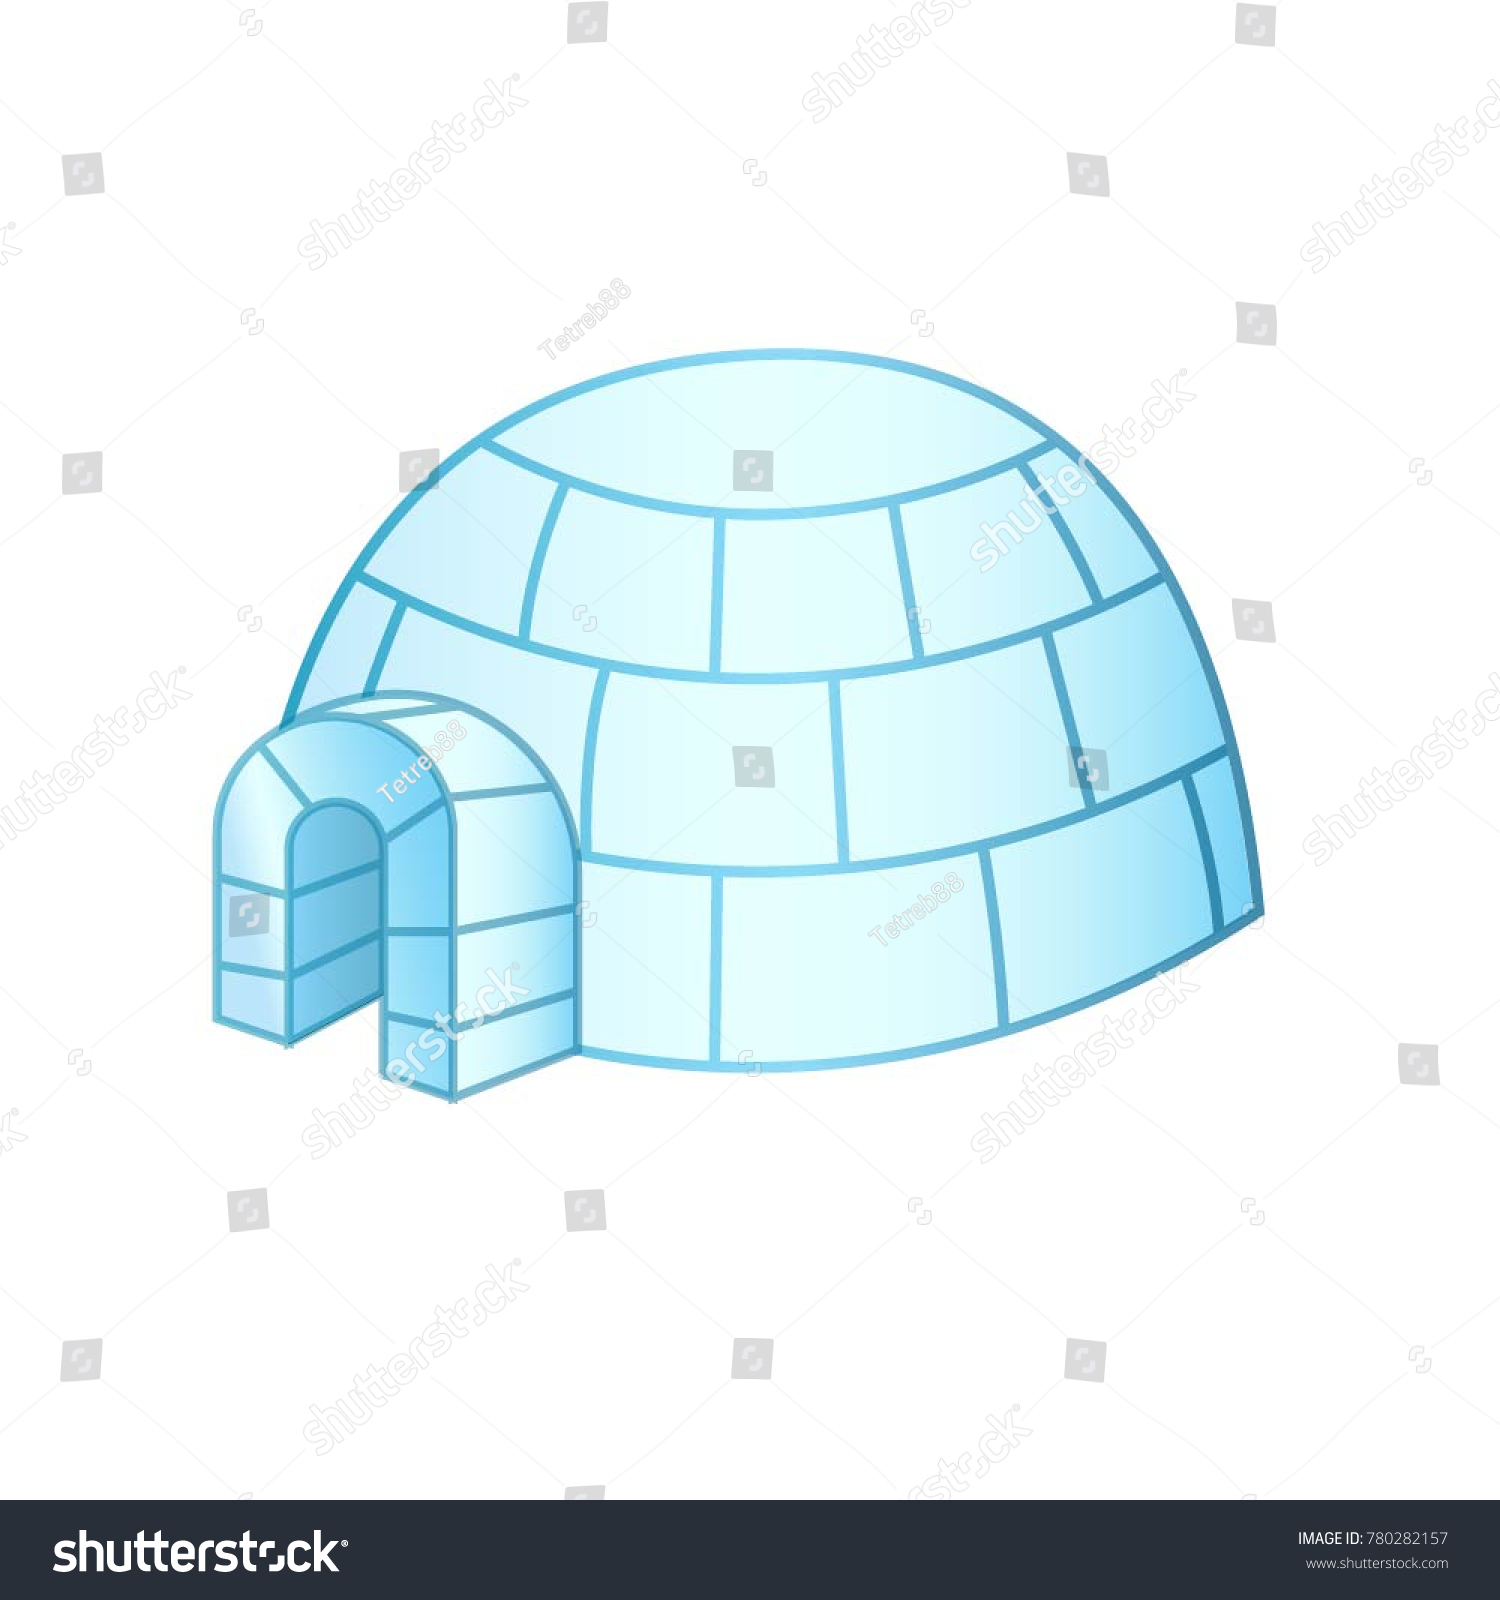 Igloo ice house greenland canada stock vector 780282157 shutterstock igloo ice house in greenland and canada pooptronica